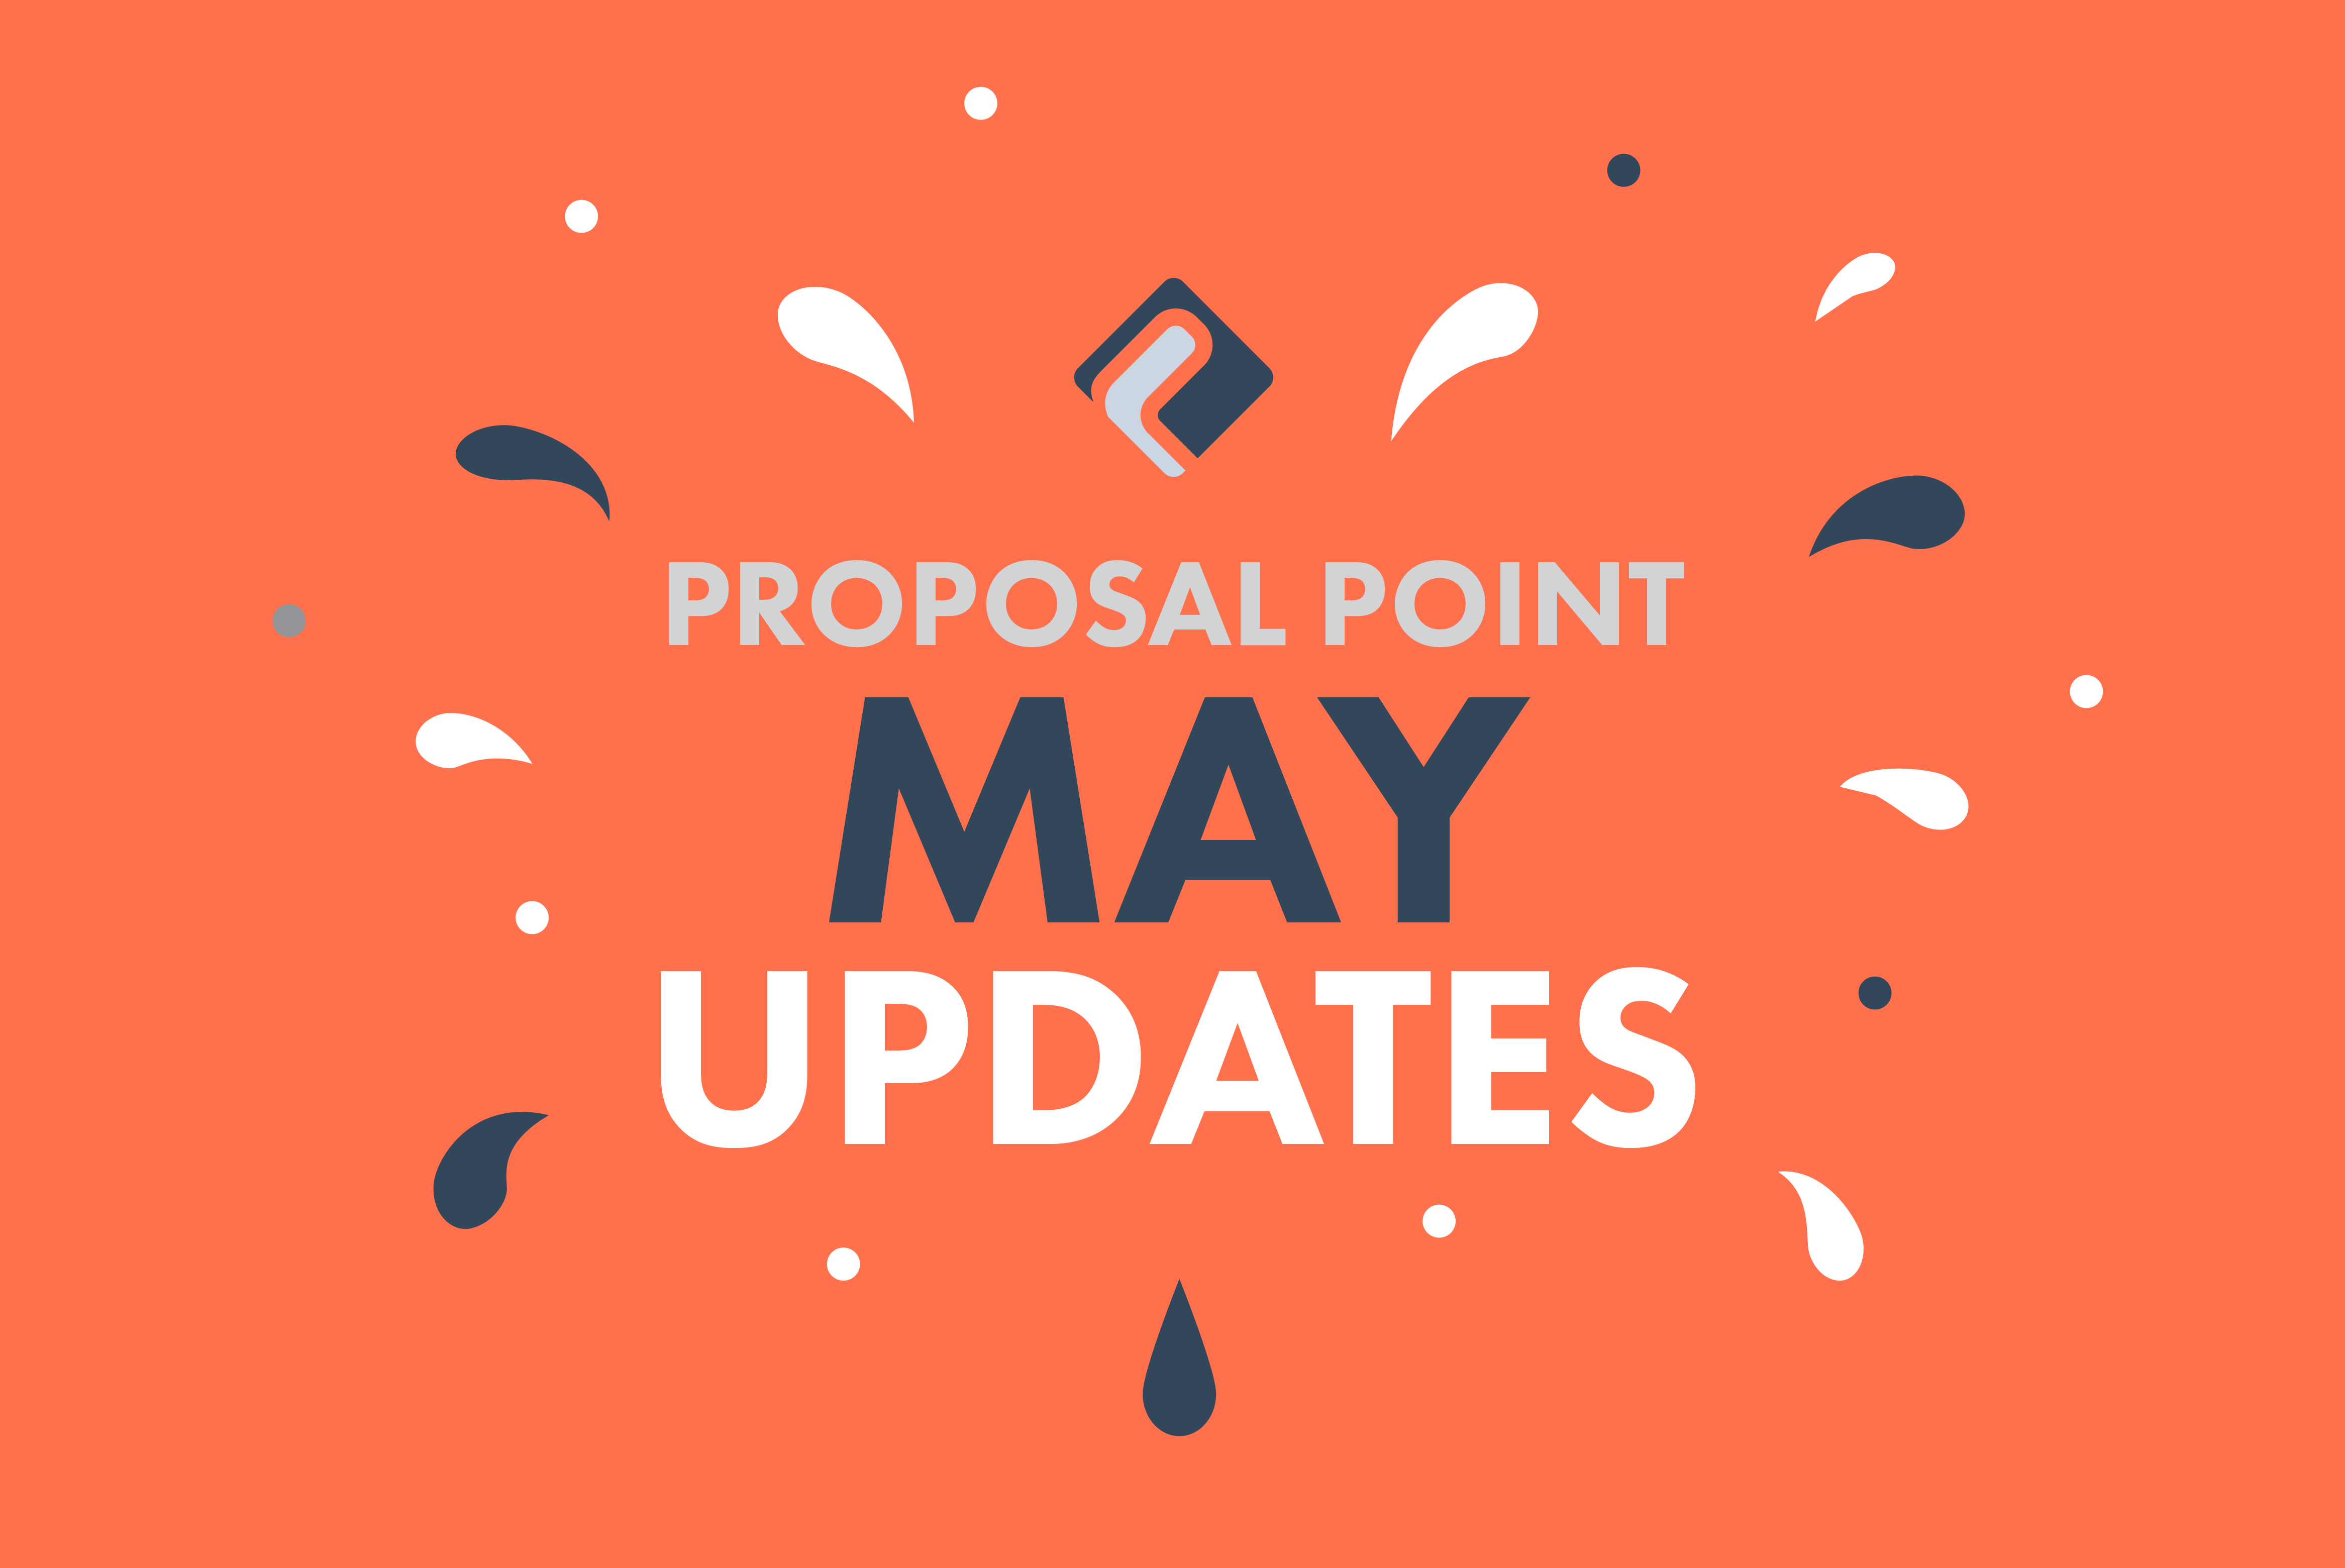 New ProposalPoint Features Added in May